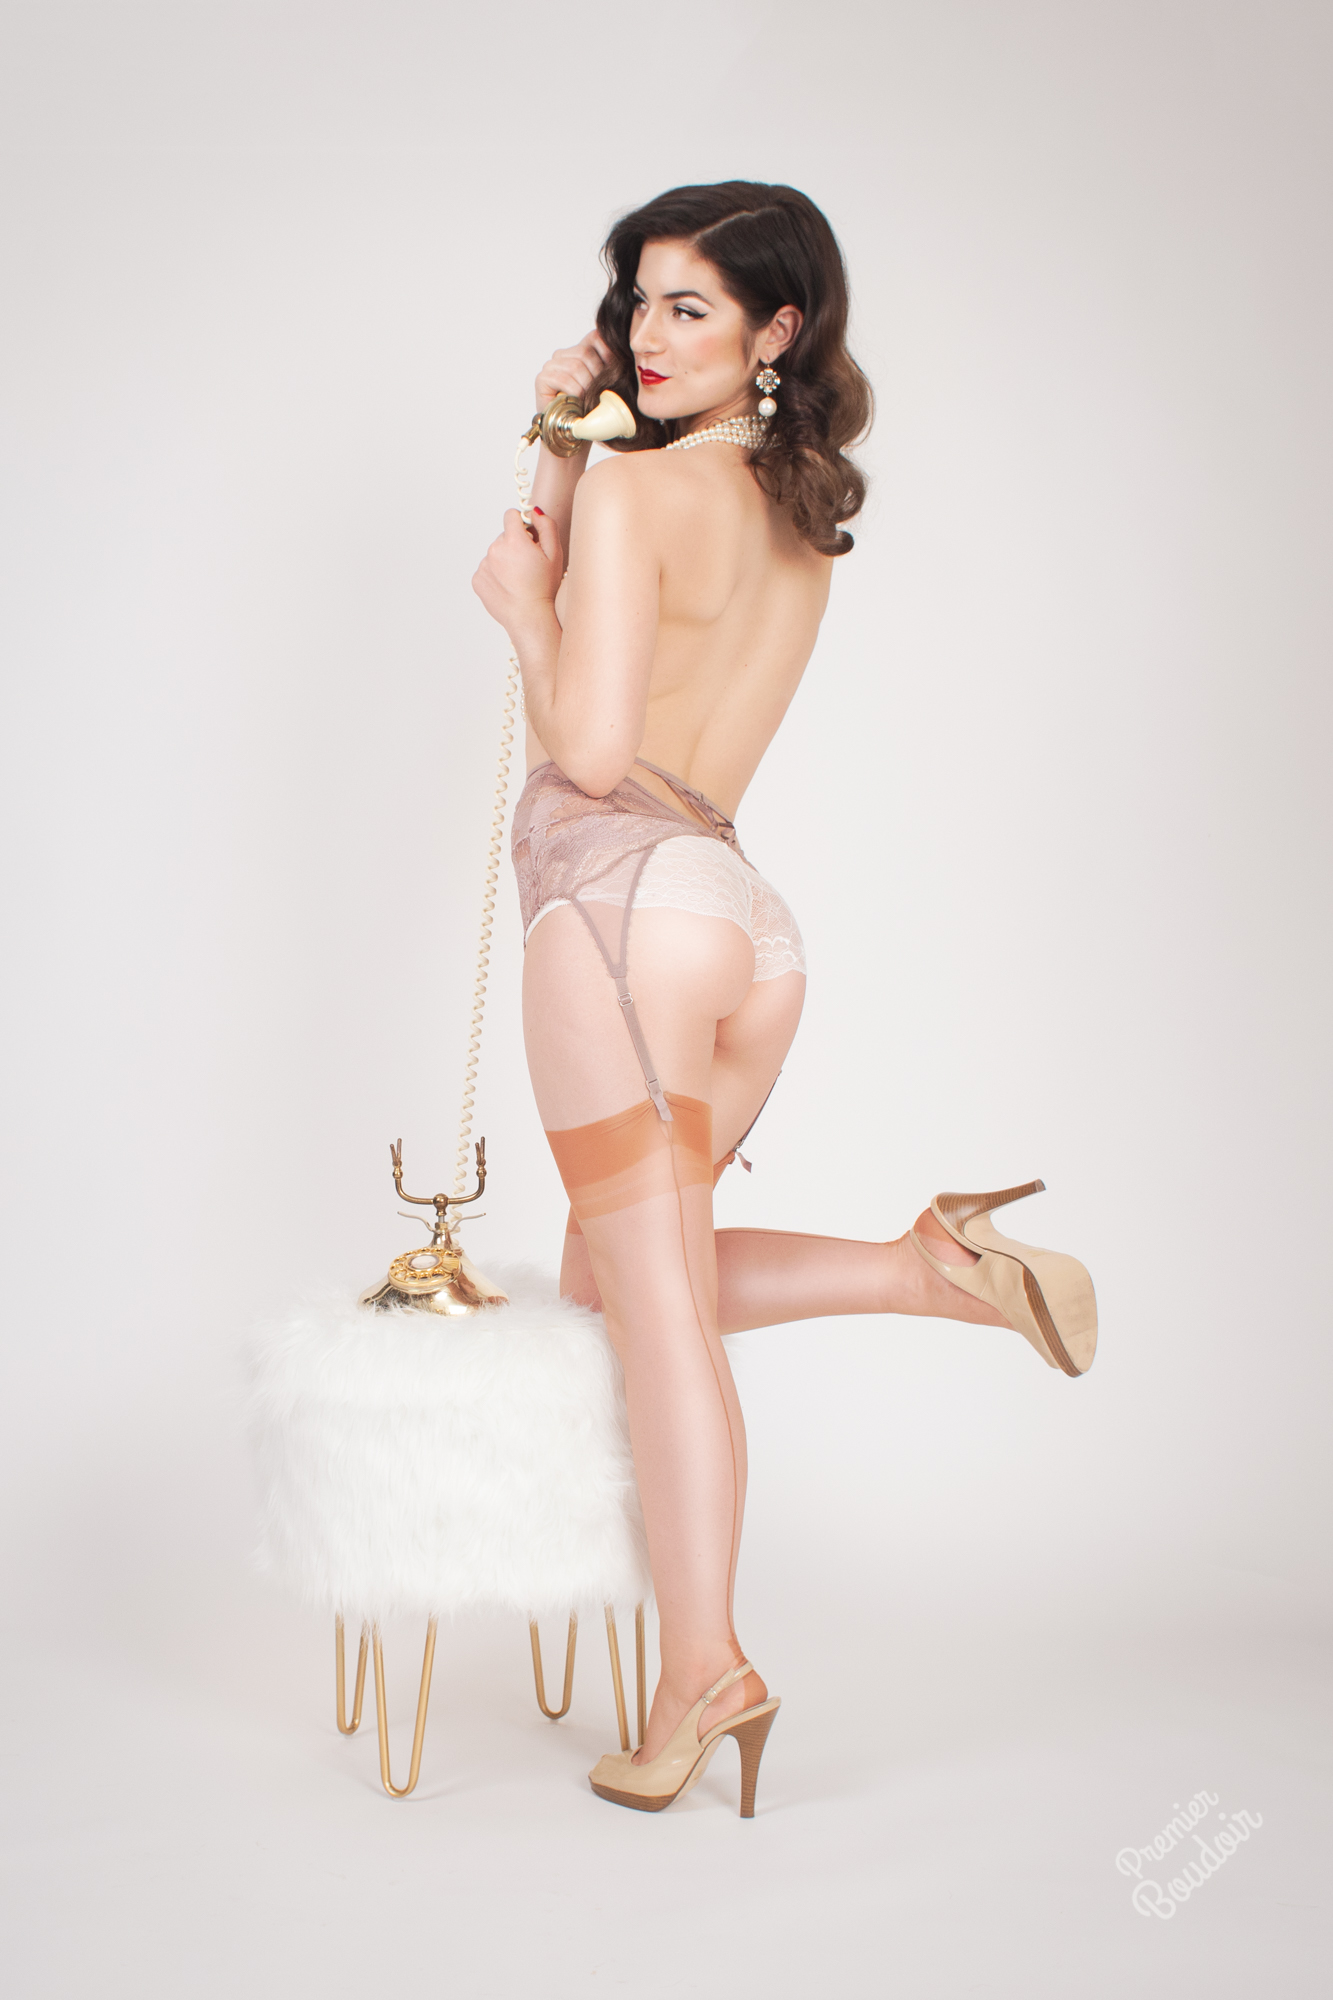 cleveland akron retro pinup vintage photographer retro hair and makeup vintage hollywood